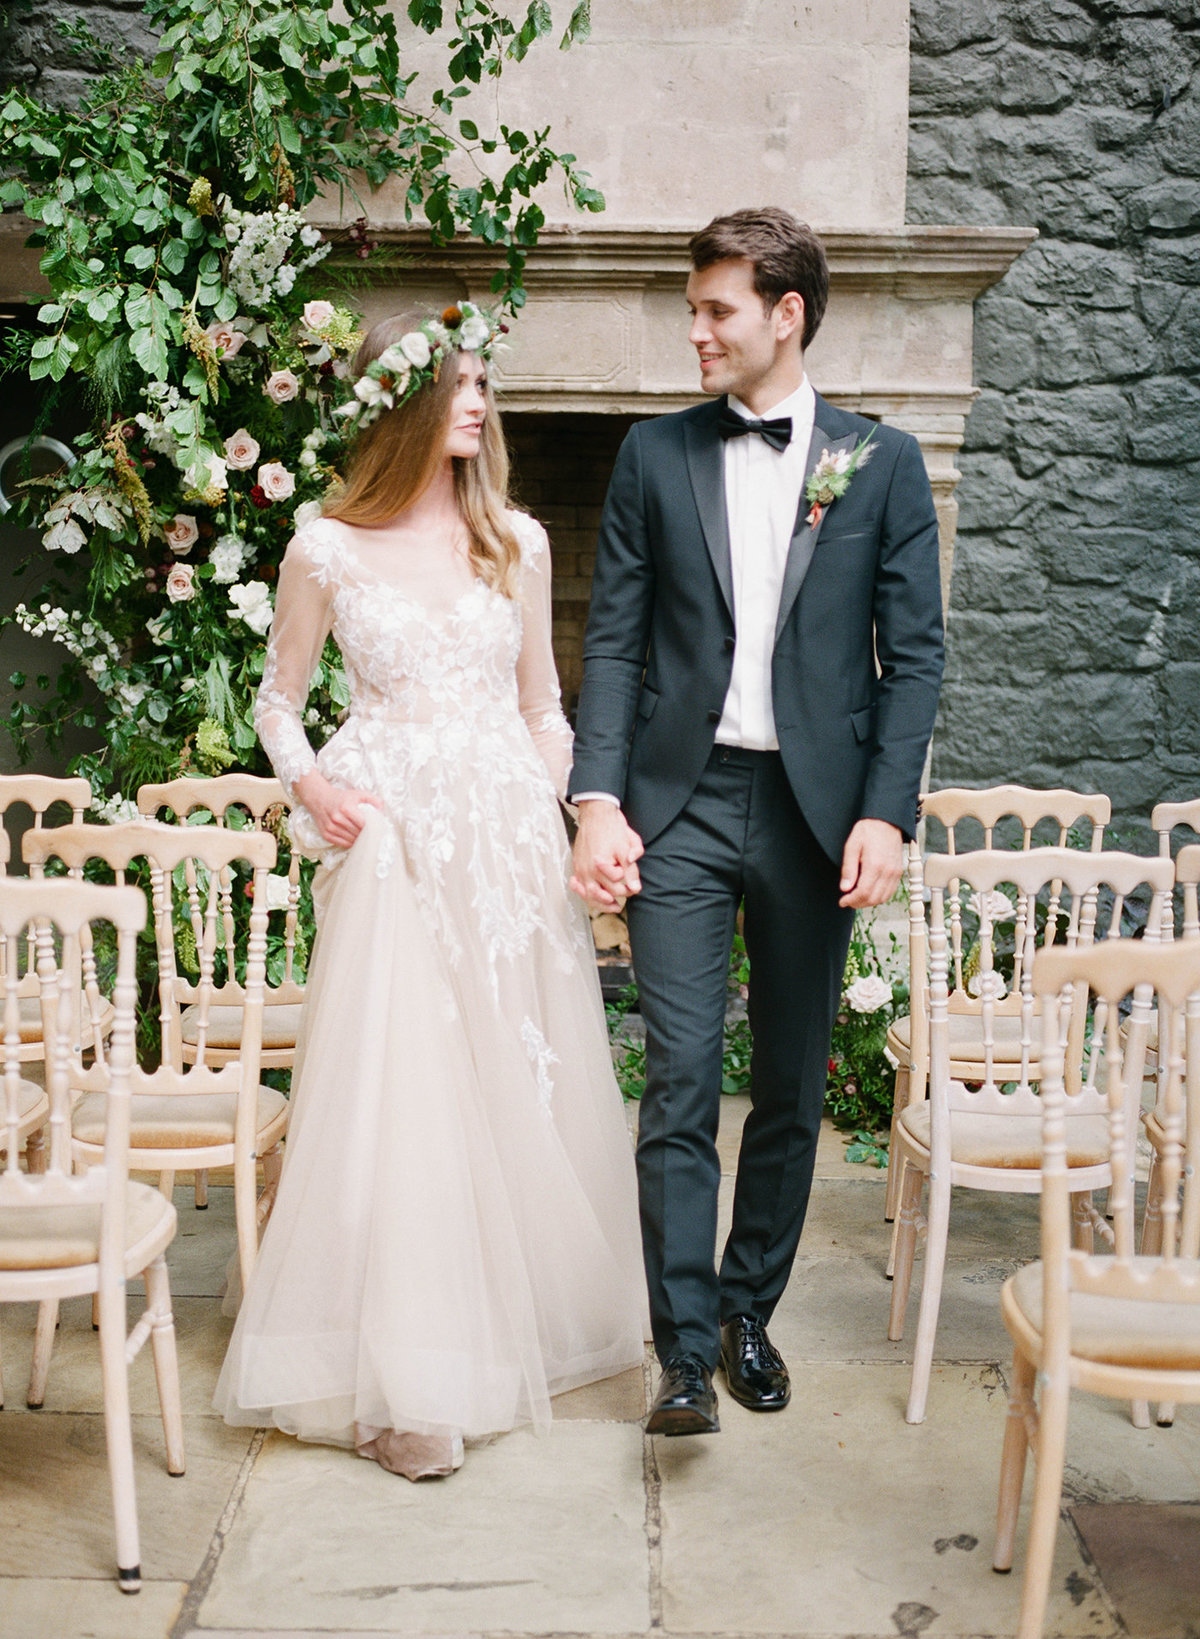 Destination Wedding Photographer - Ireland Editorial - Cliff at Lyons Kildare Ireland - Sarah Sunstrom Photography - 34